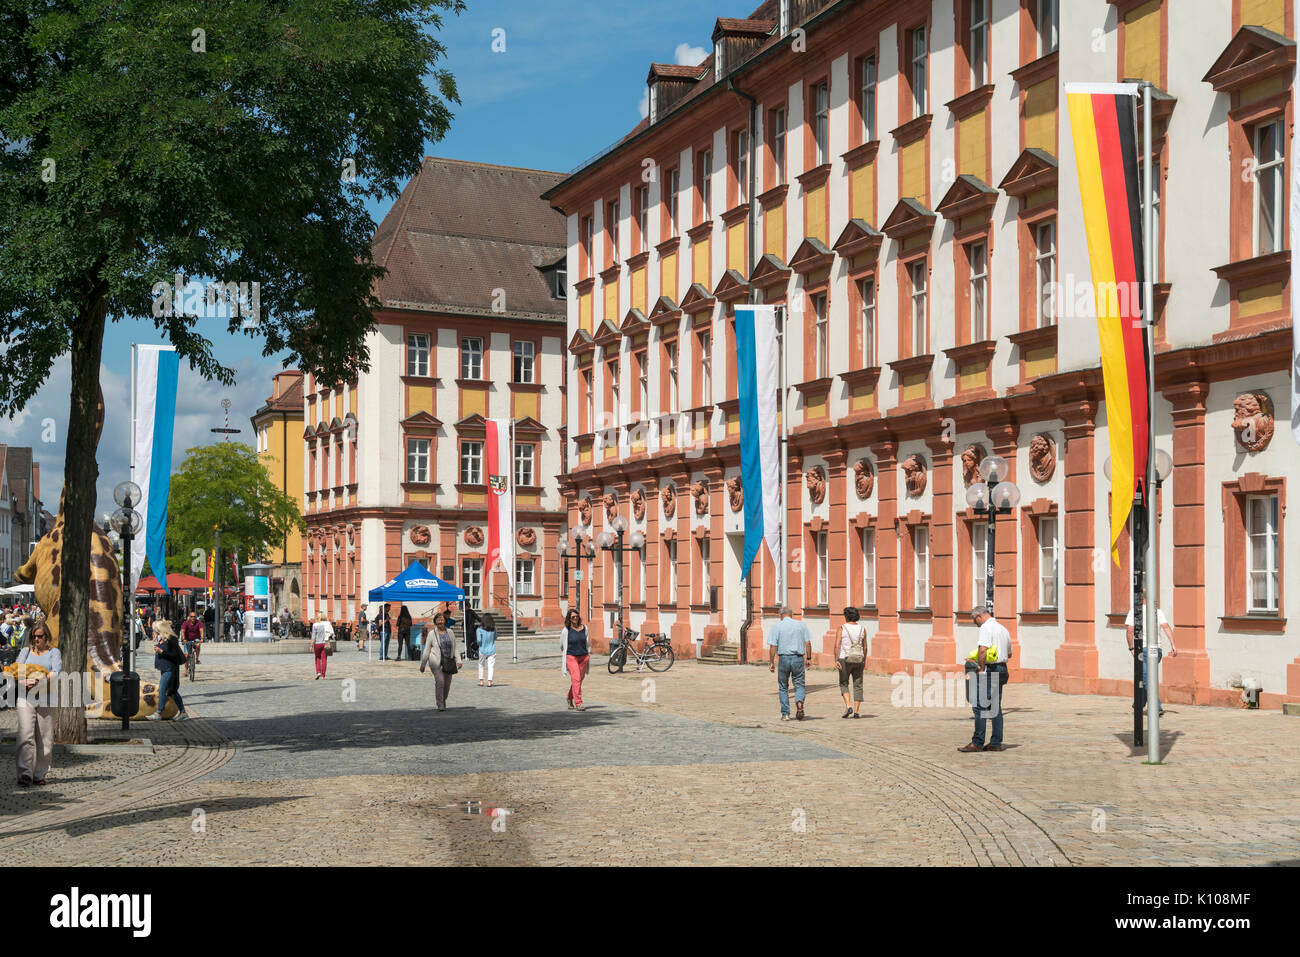 Fussgängerzone Maximilianstrasse und das Alte Schloss in Bayreuth, Oberfranken, Bayern, Deutschland | Pedestrian zone Maximilianstrasse and the Old Ca - Stock Image